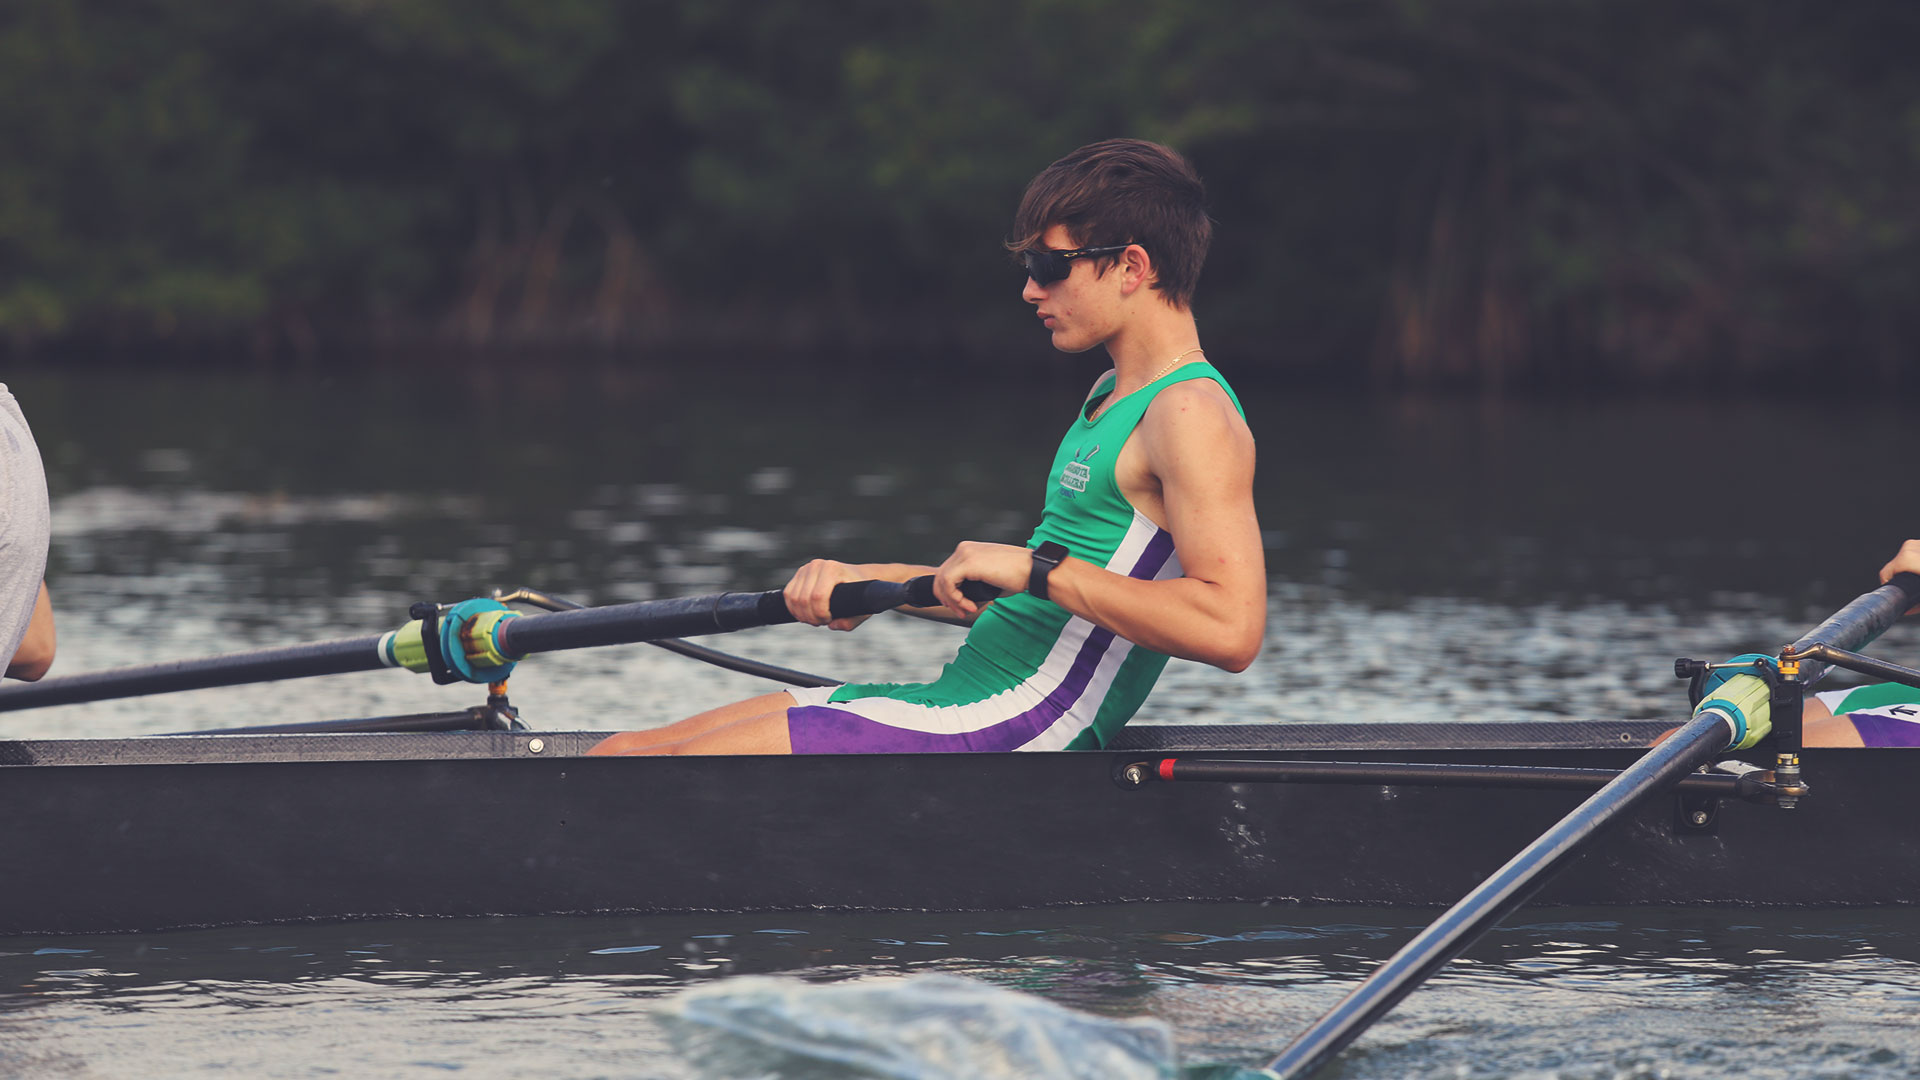 WRCBTV.com – Head of the Hooch: In the Face of Tragedy Florida Teens Row for the Cure